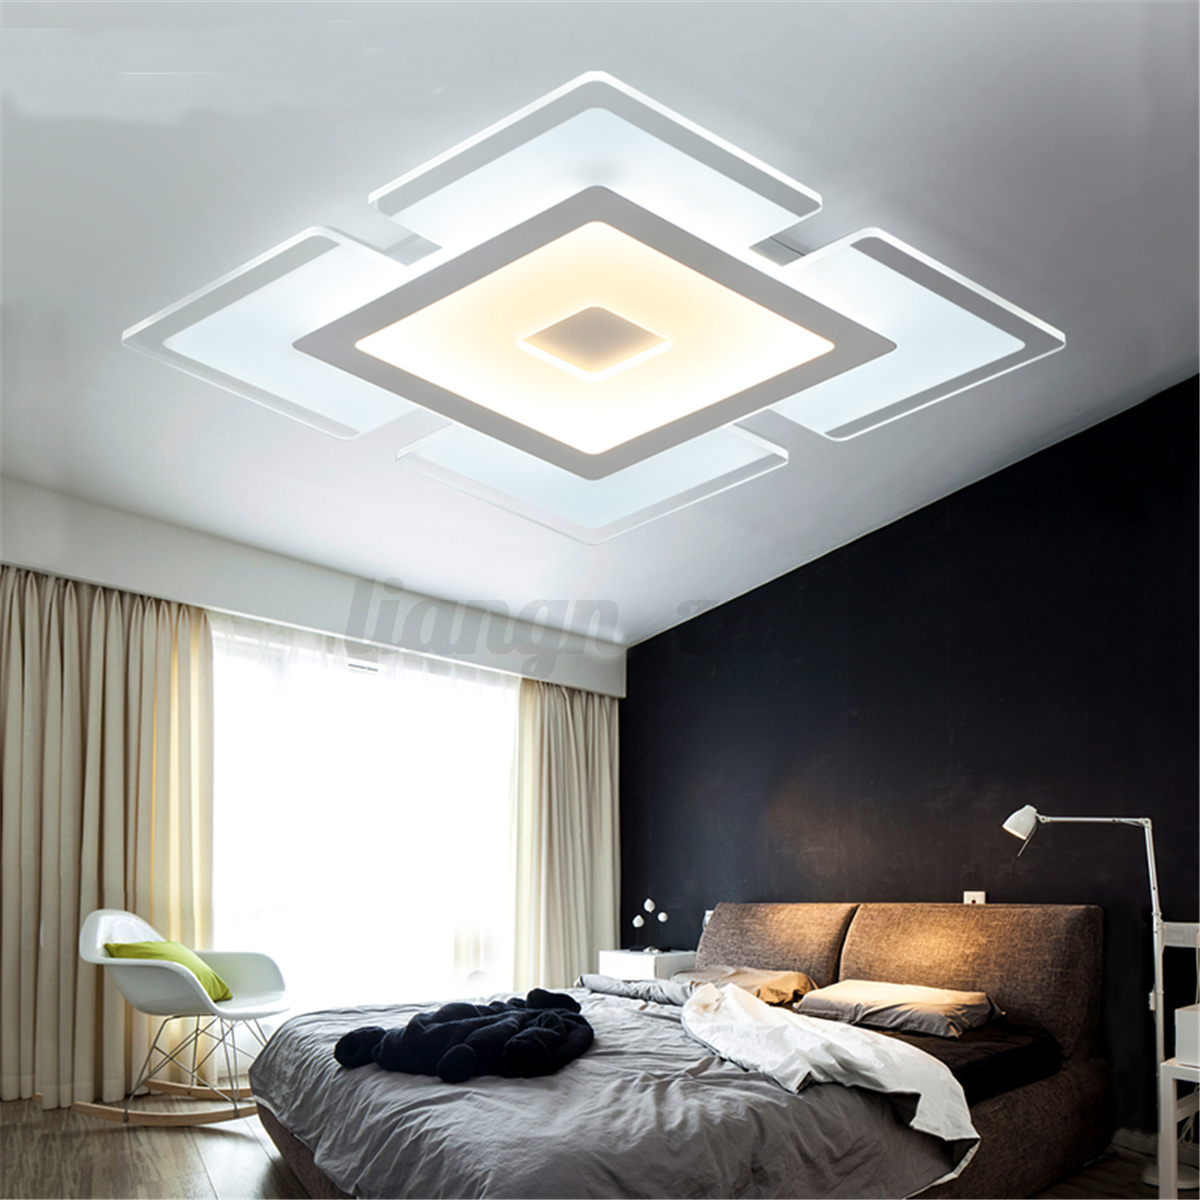 15w led moderne plafonnier suspension luminaire lampe suspendu lumi re lustre ebay. Black Bedroom Furniture Sets. Home Design Ideas